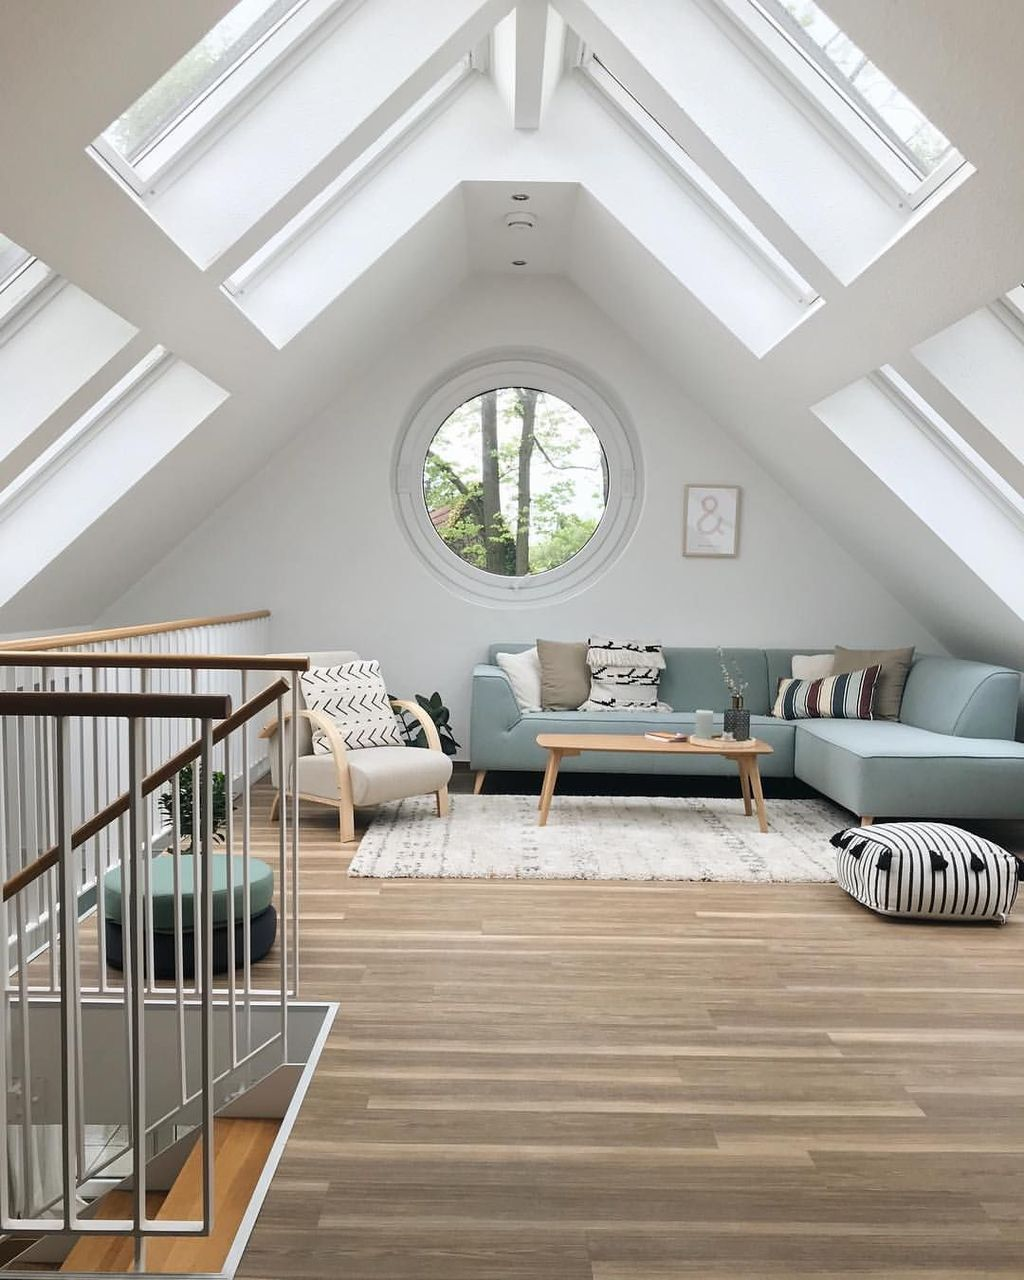 34 The Best Attic Bedroom Ideas To Maximize Your Home Attic Bedroom Small Attic Bedroom Designs Attic Design Ideas